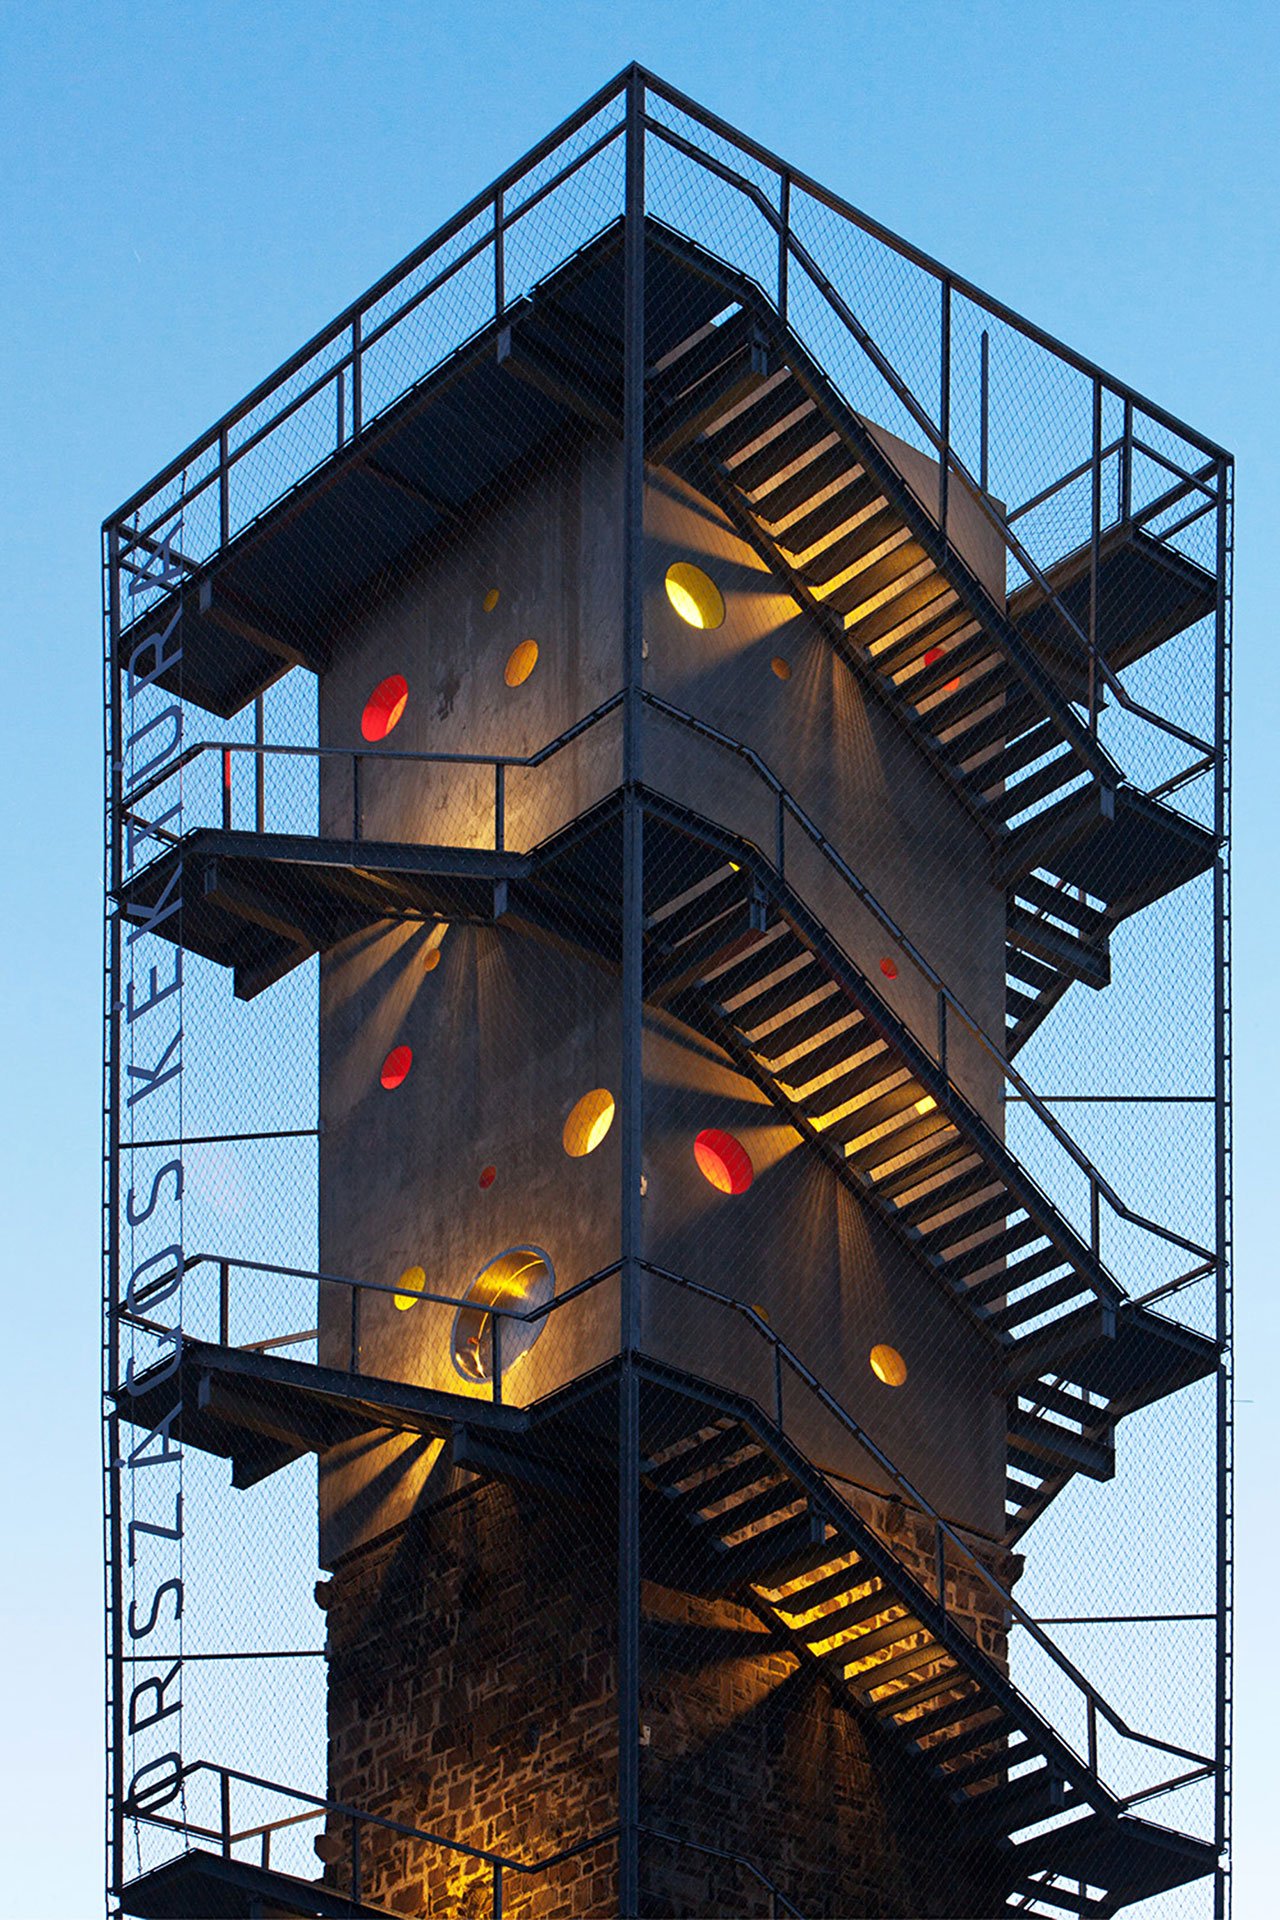 Lookout Tower at Galyateto by Nartarchitects. Photo © Tamas Bujnovszky.